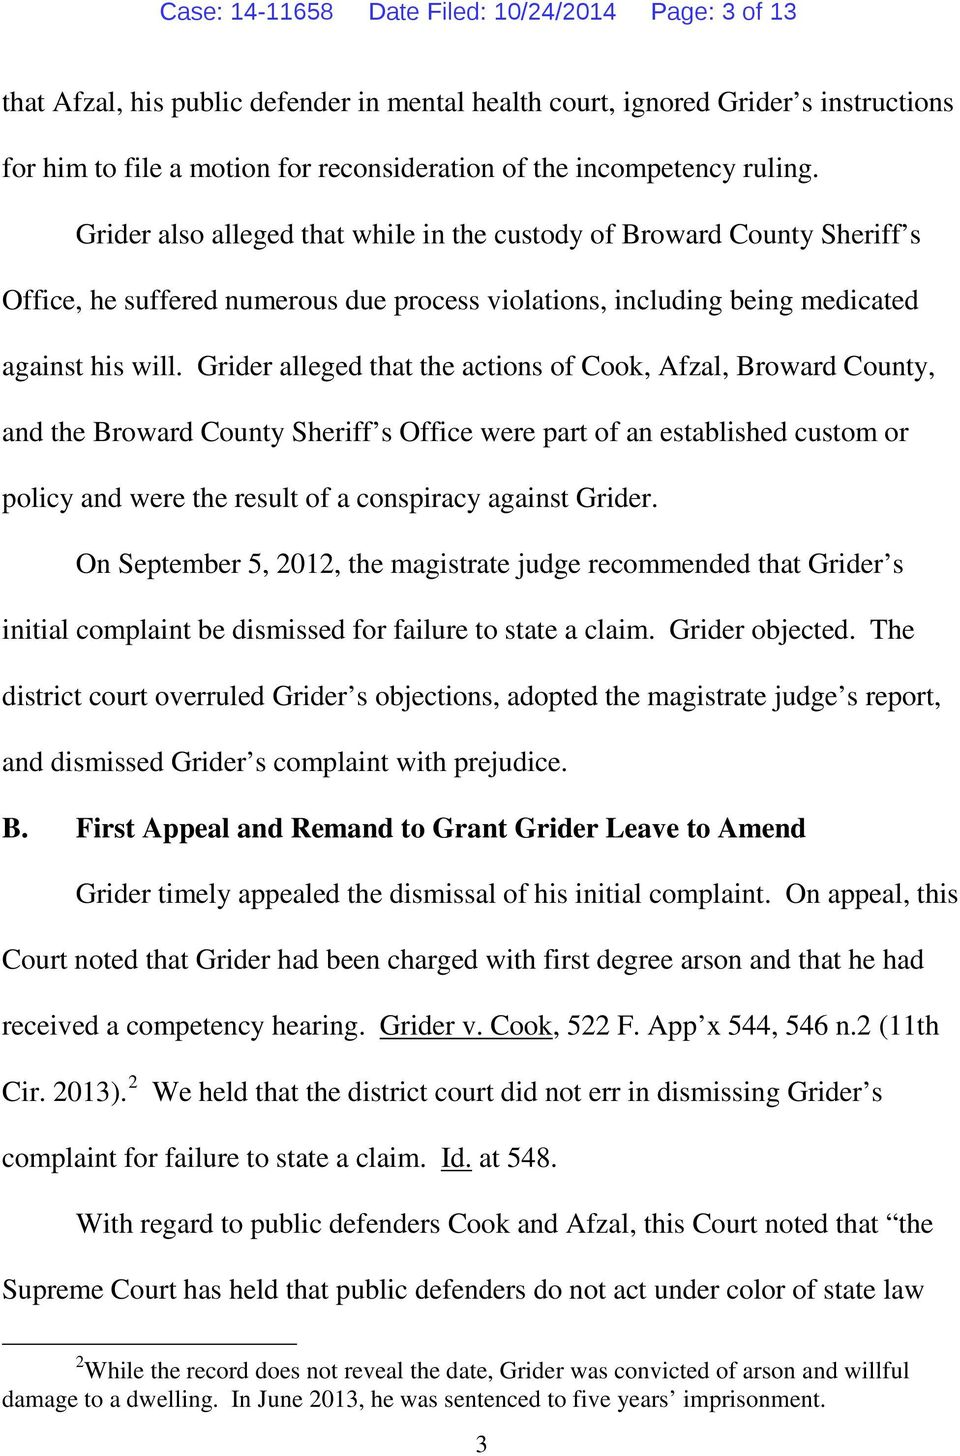 Grider alleged that the actions of Cook, Afzal, Broward County, and the Broward County Sheriff s Office were part of an established custom or policy and were the result of a conspiracy against Grider.